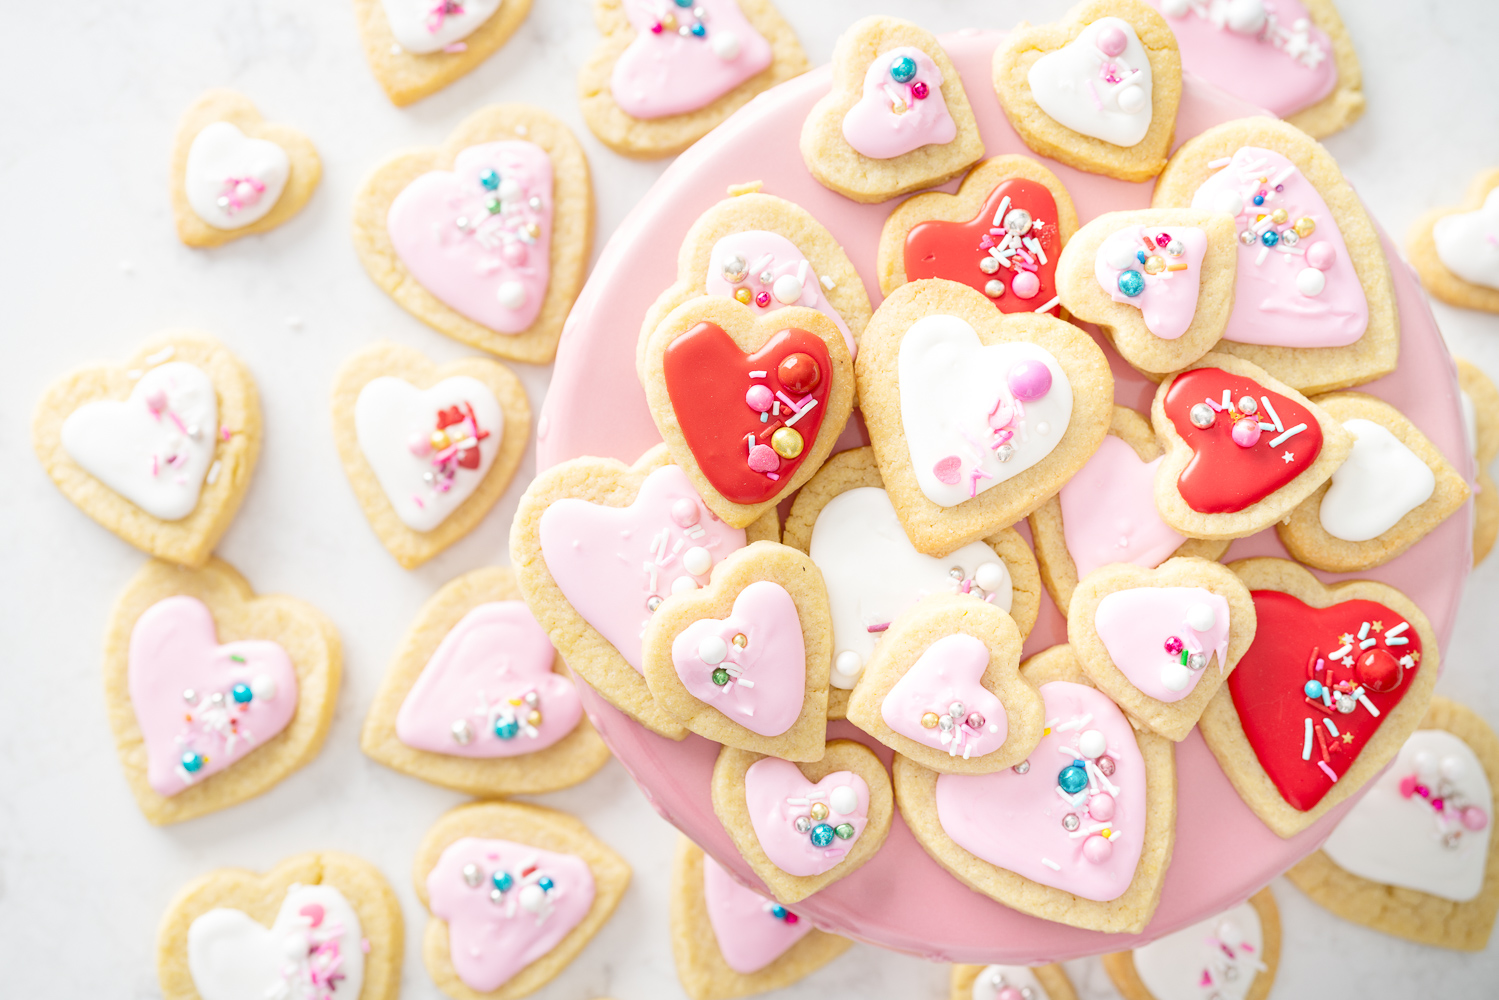 Petite Fashion and Style Blog | Valentine's Day Sugar Cookies | Sugar Cookie Recipe | How to Flood a Cookie